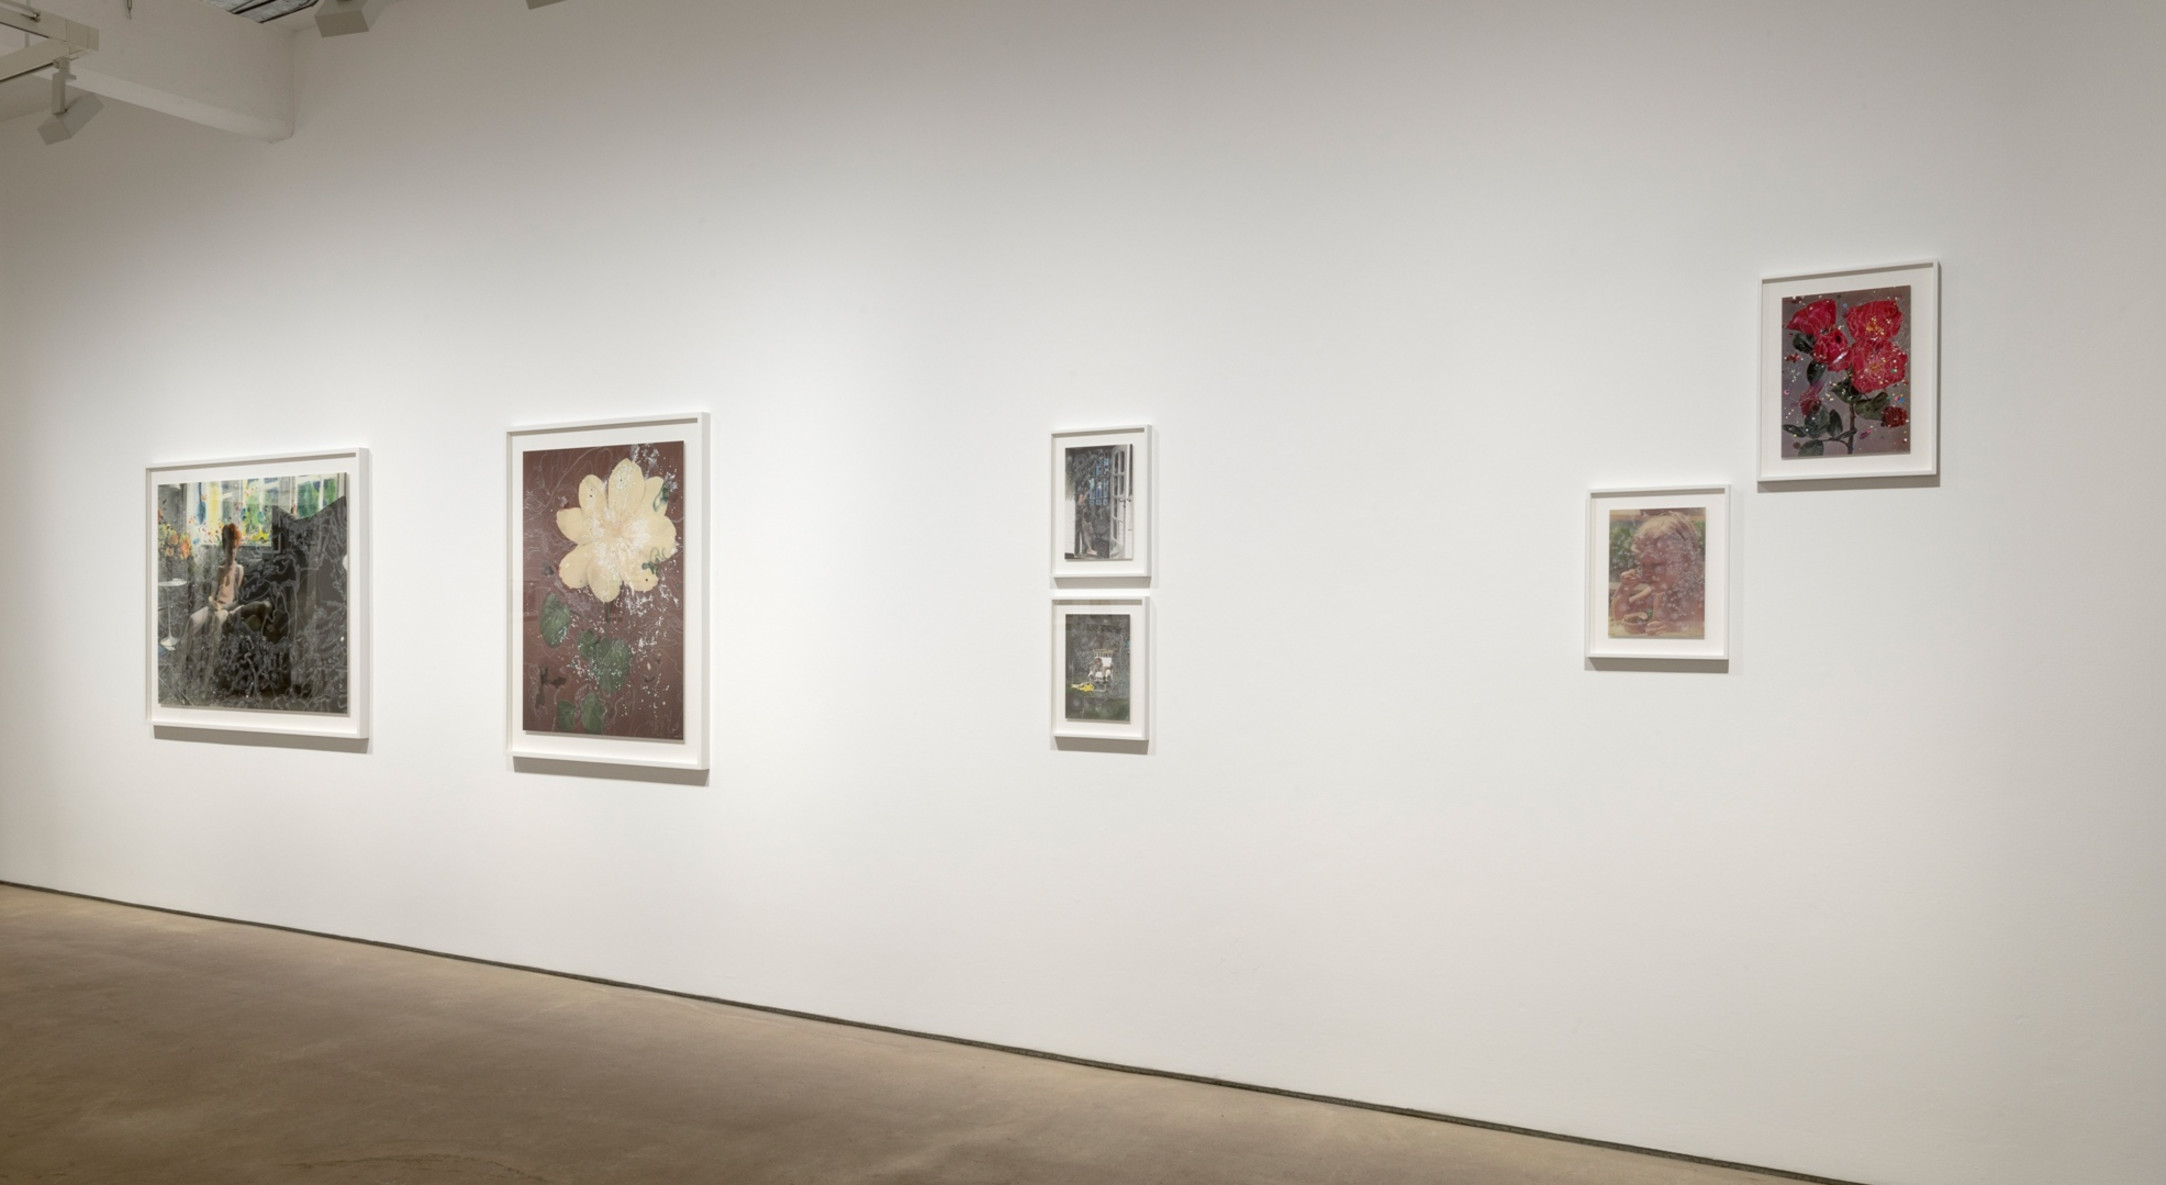 Installation view of Sebastiaan Bremer, Here Comes the Sun at Hales London